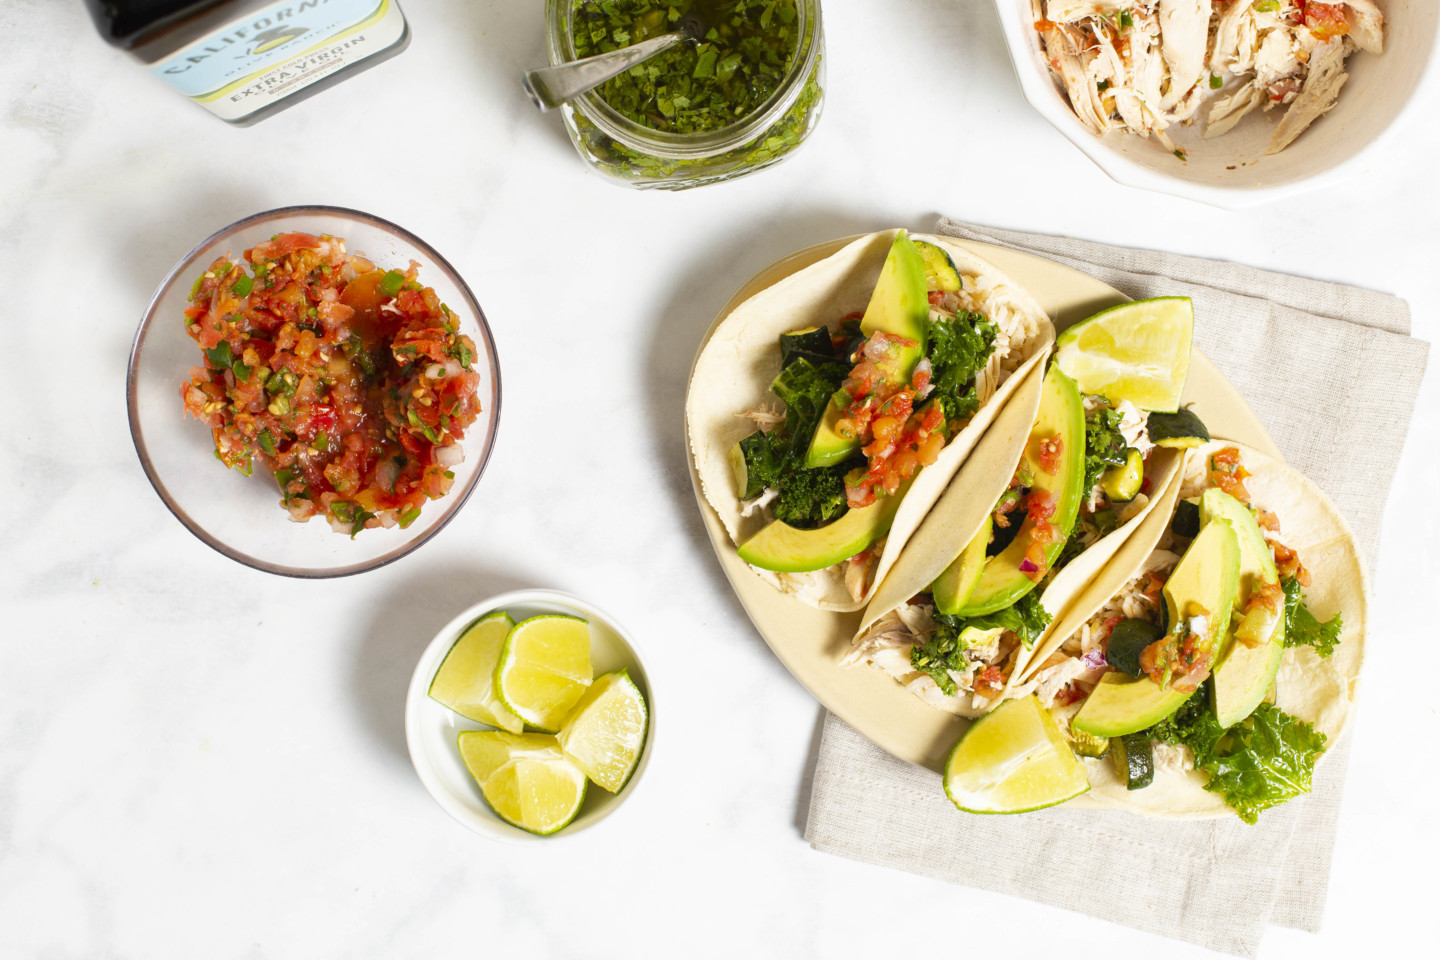 chicken tacos with kale, salsa, pesto, and avocado